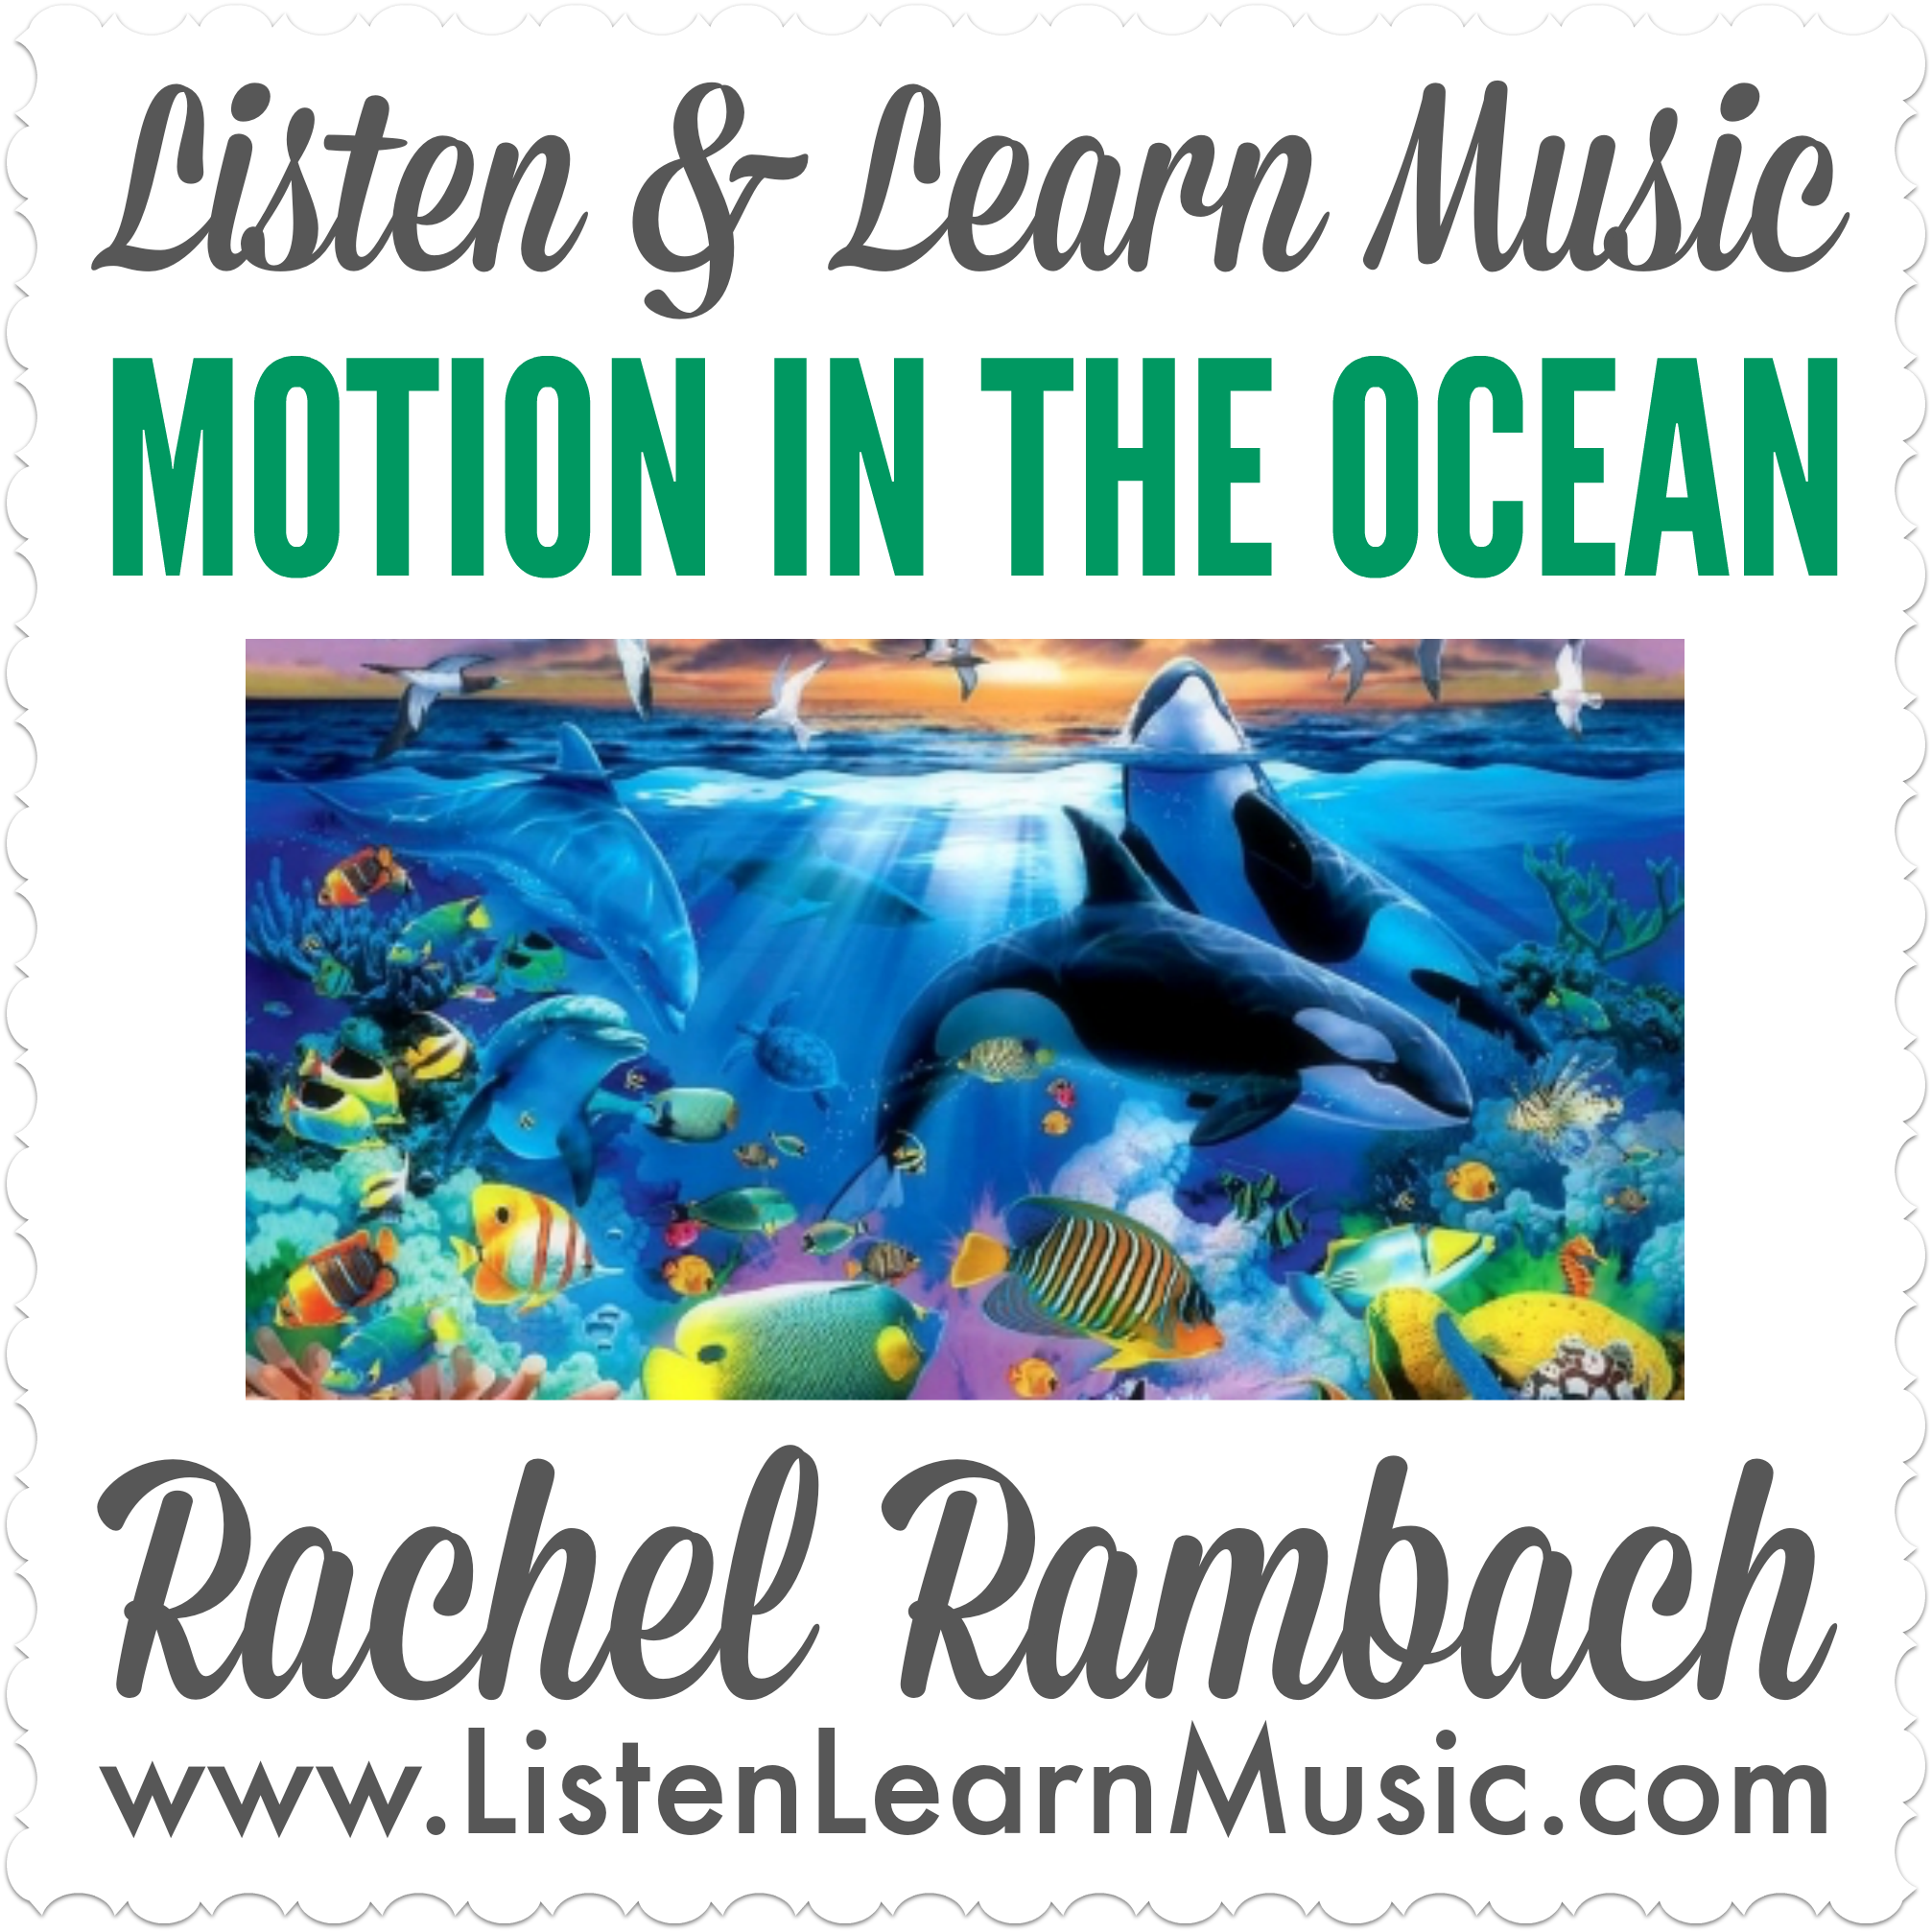 Motion in the Ocean | Music Therapy Song for Ocean Drum | Listen & Learn Music | Rachel Rambach